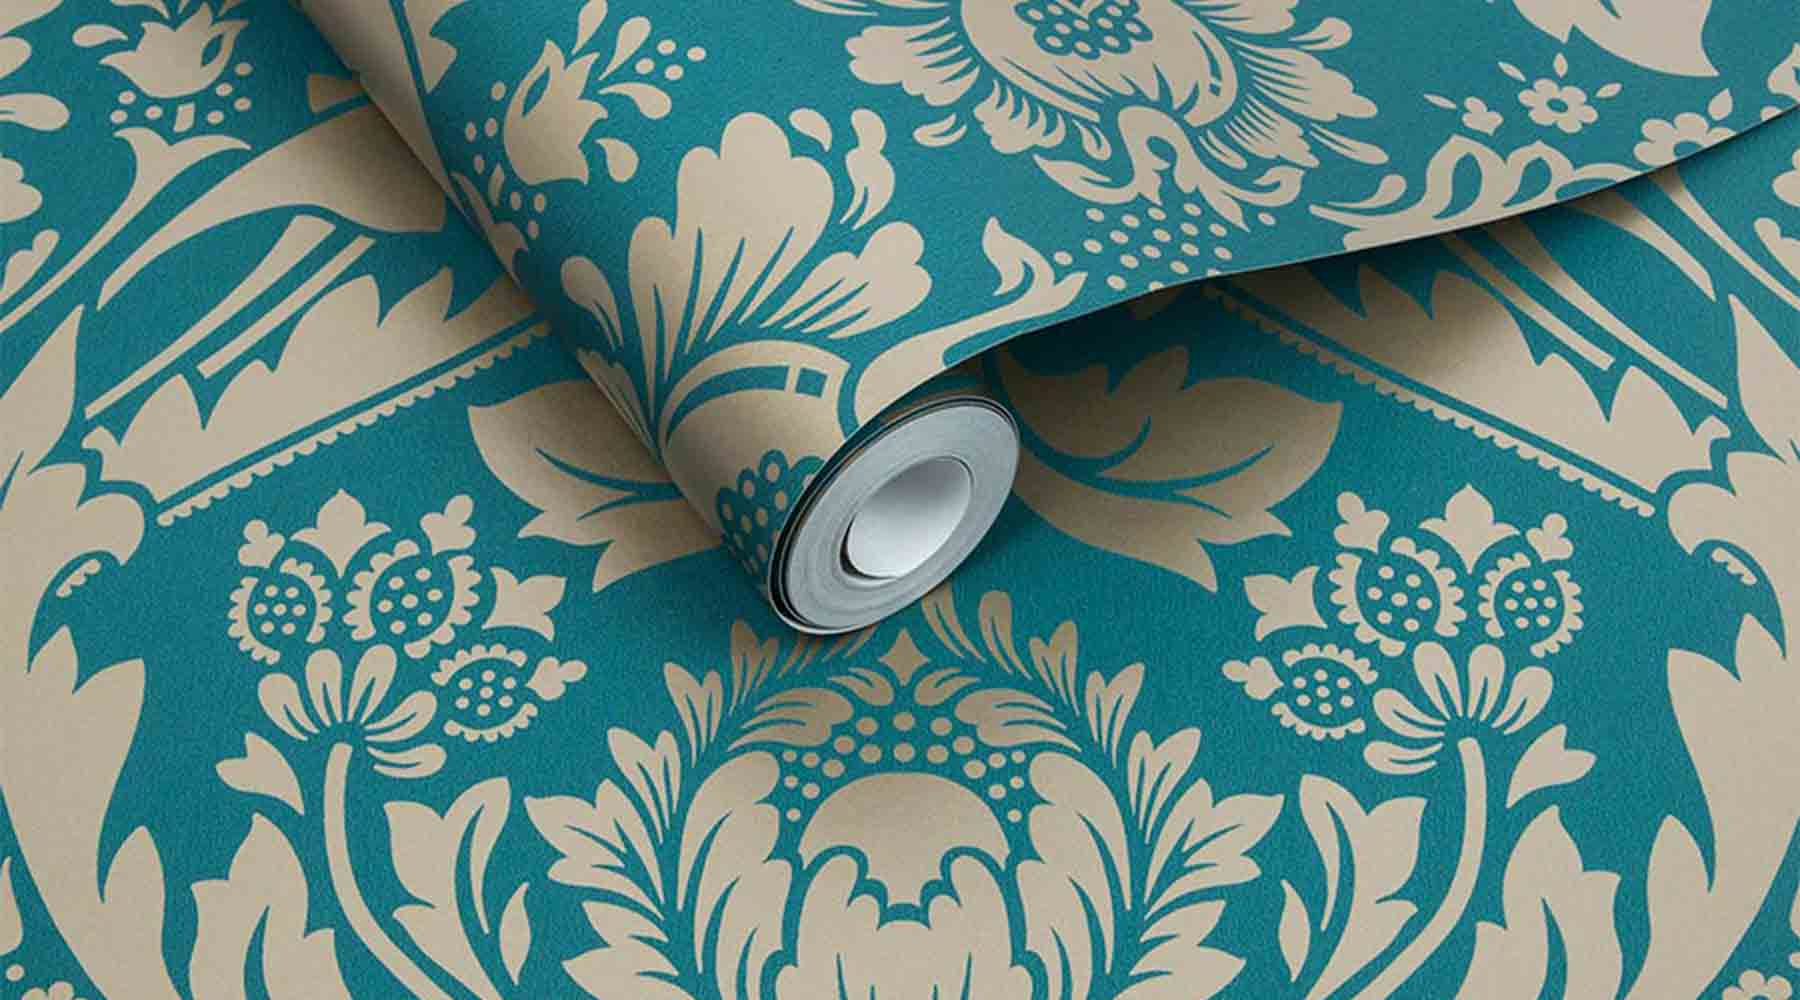 7 wallpapers to match your personality